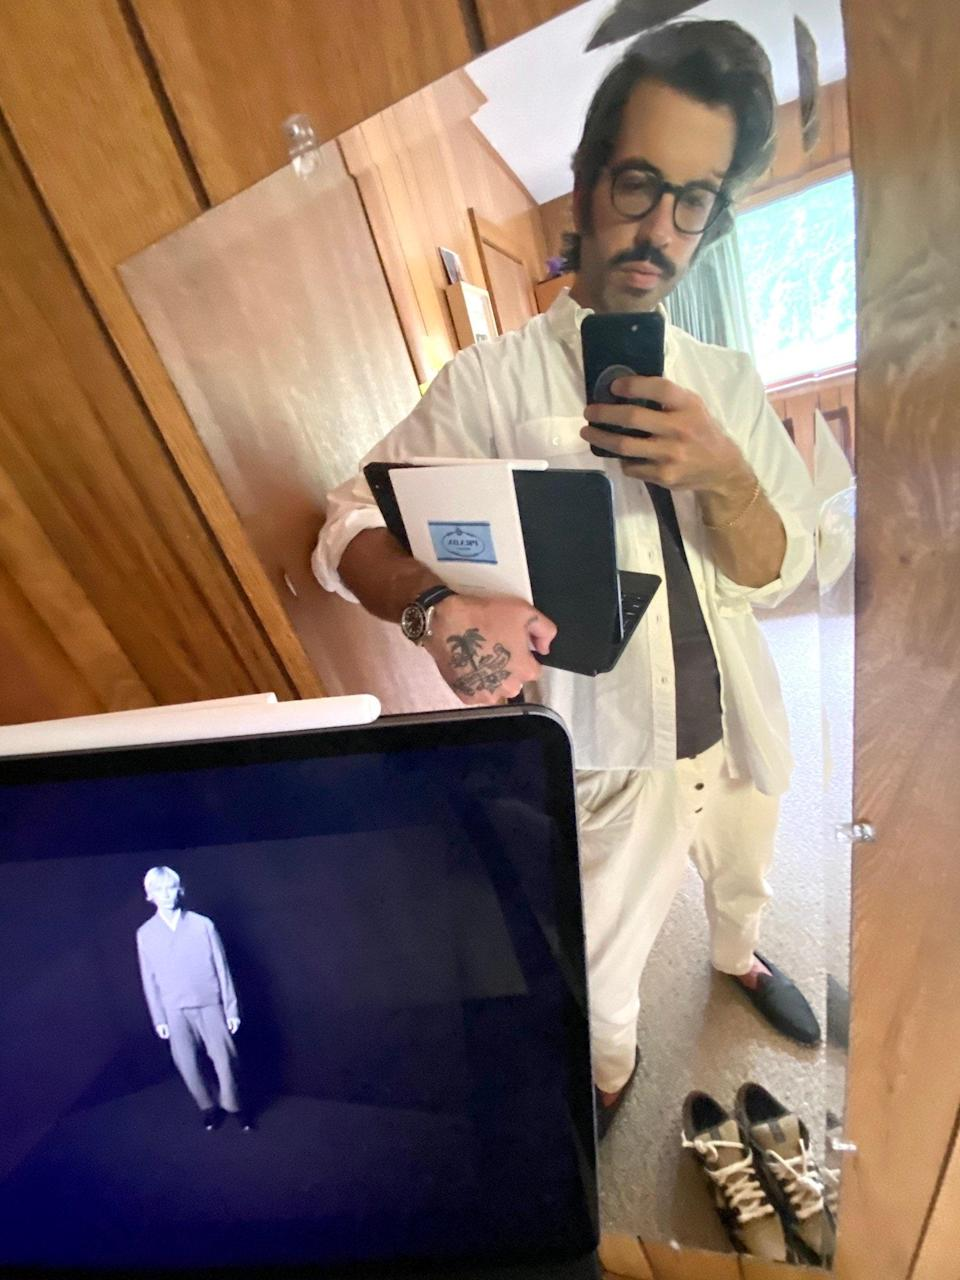 <p>I'm dressing as E-Z as possible in Quar, but most days I feel I need a shirt collar as a small sign of respect to the very real GQ business going down on Zoom. Kapital Sarouel Nouvelle pants have quickly become definitive Quar gear.</p> <p>Shirt - RTH</p> <p>Tee - Our Legacy</p> <p>Pants - Kapital</p> <p>Watch - Tudor</p> <p>Shoes - Sabah</p> <p>Sneakers - Cactus Jack Nike</p> <p>Bracelet - The Great Frog</p>